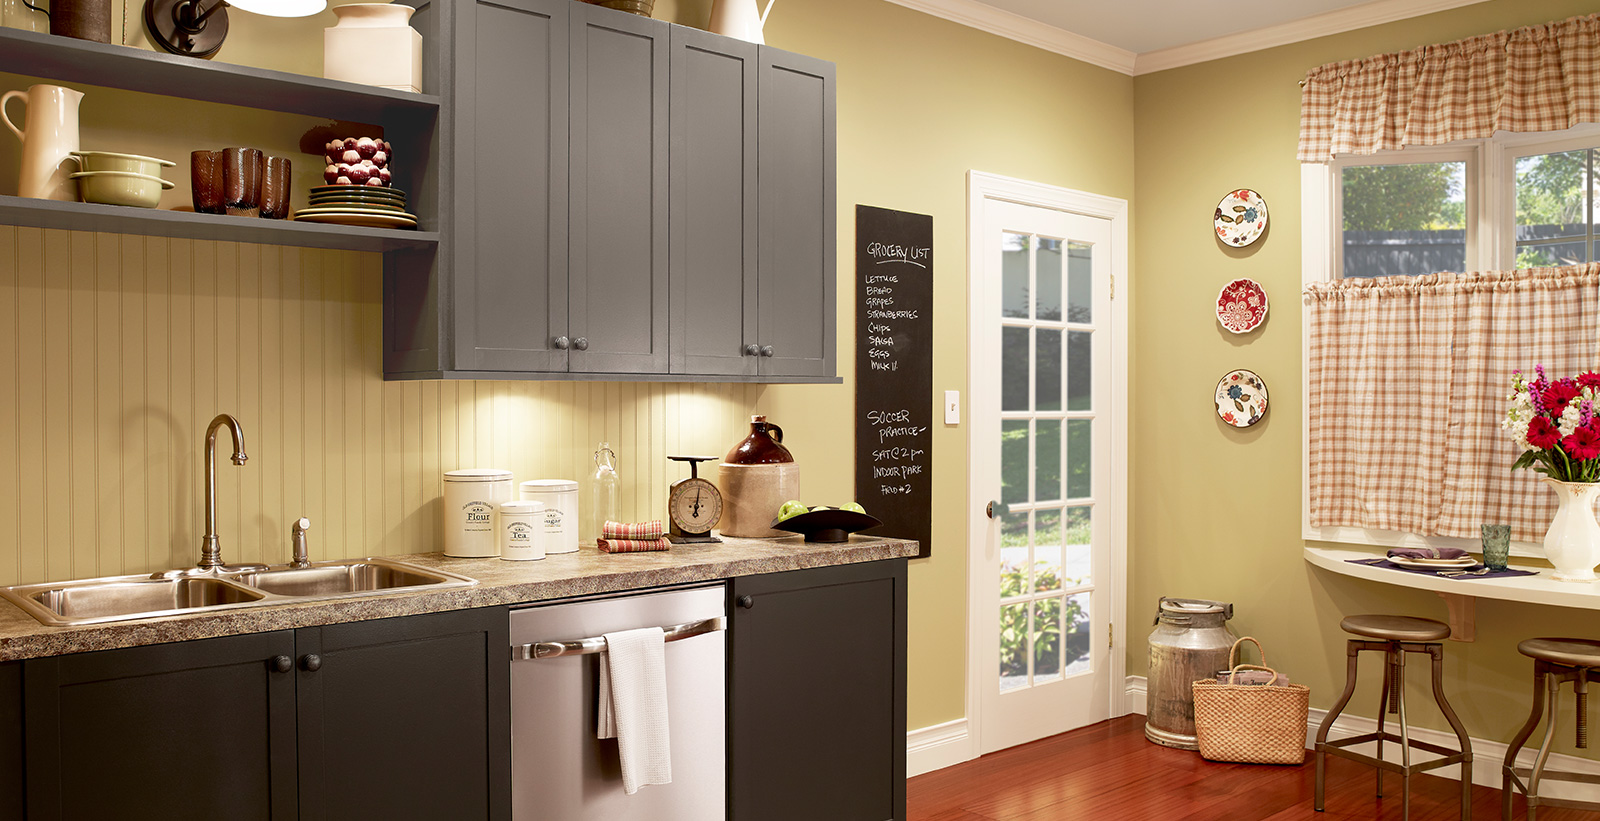 Retro styled kitchen with muted yellow-green on walls, charcoal gray on cabinets, and granite counter tops.